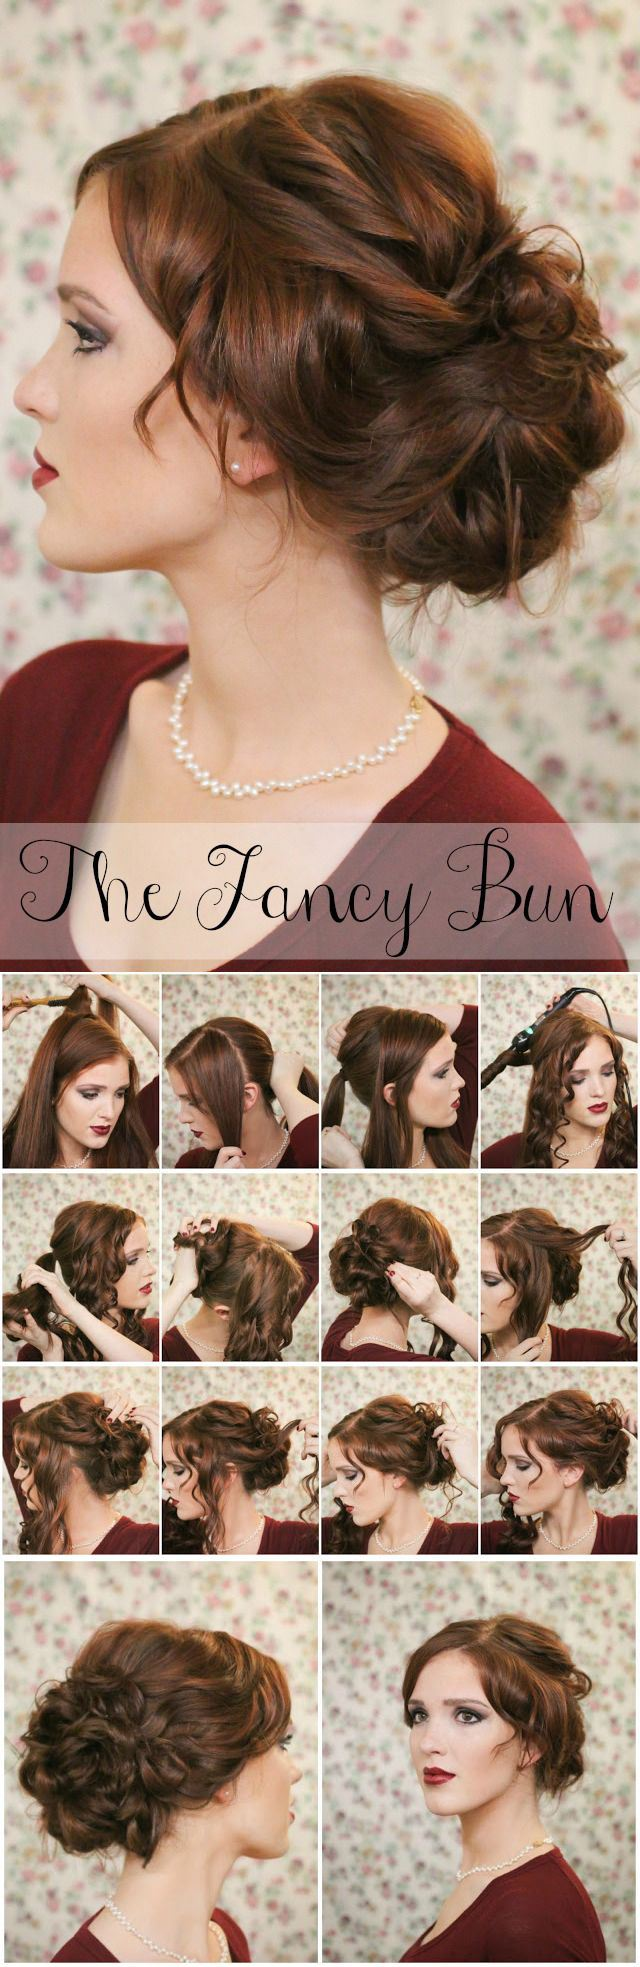 Simple Fancy hair bun!